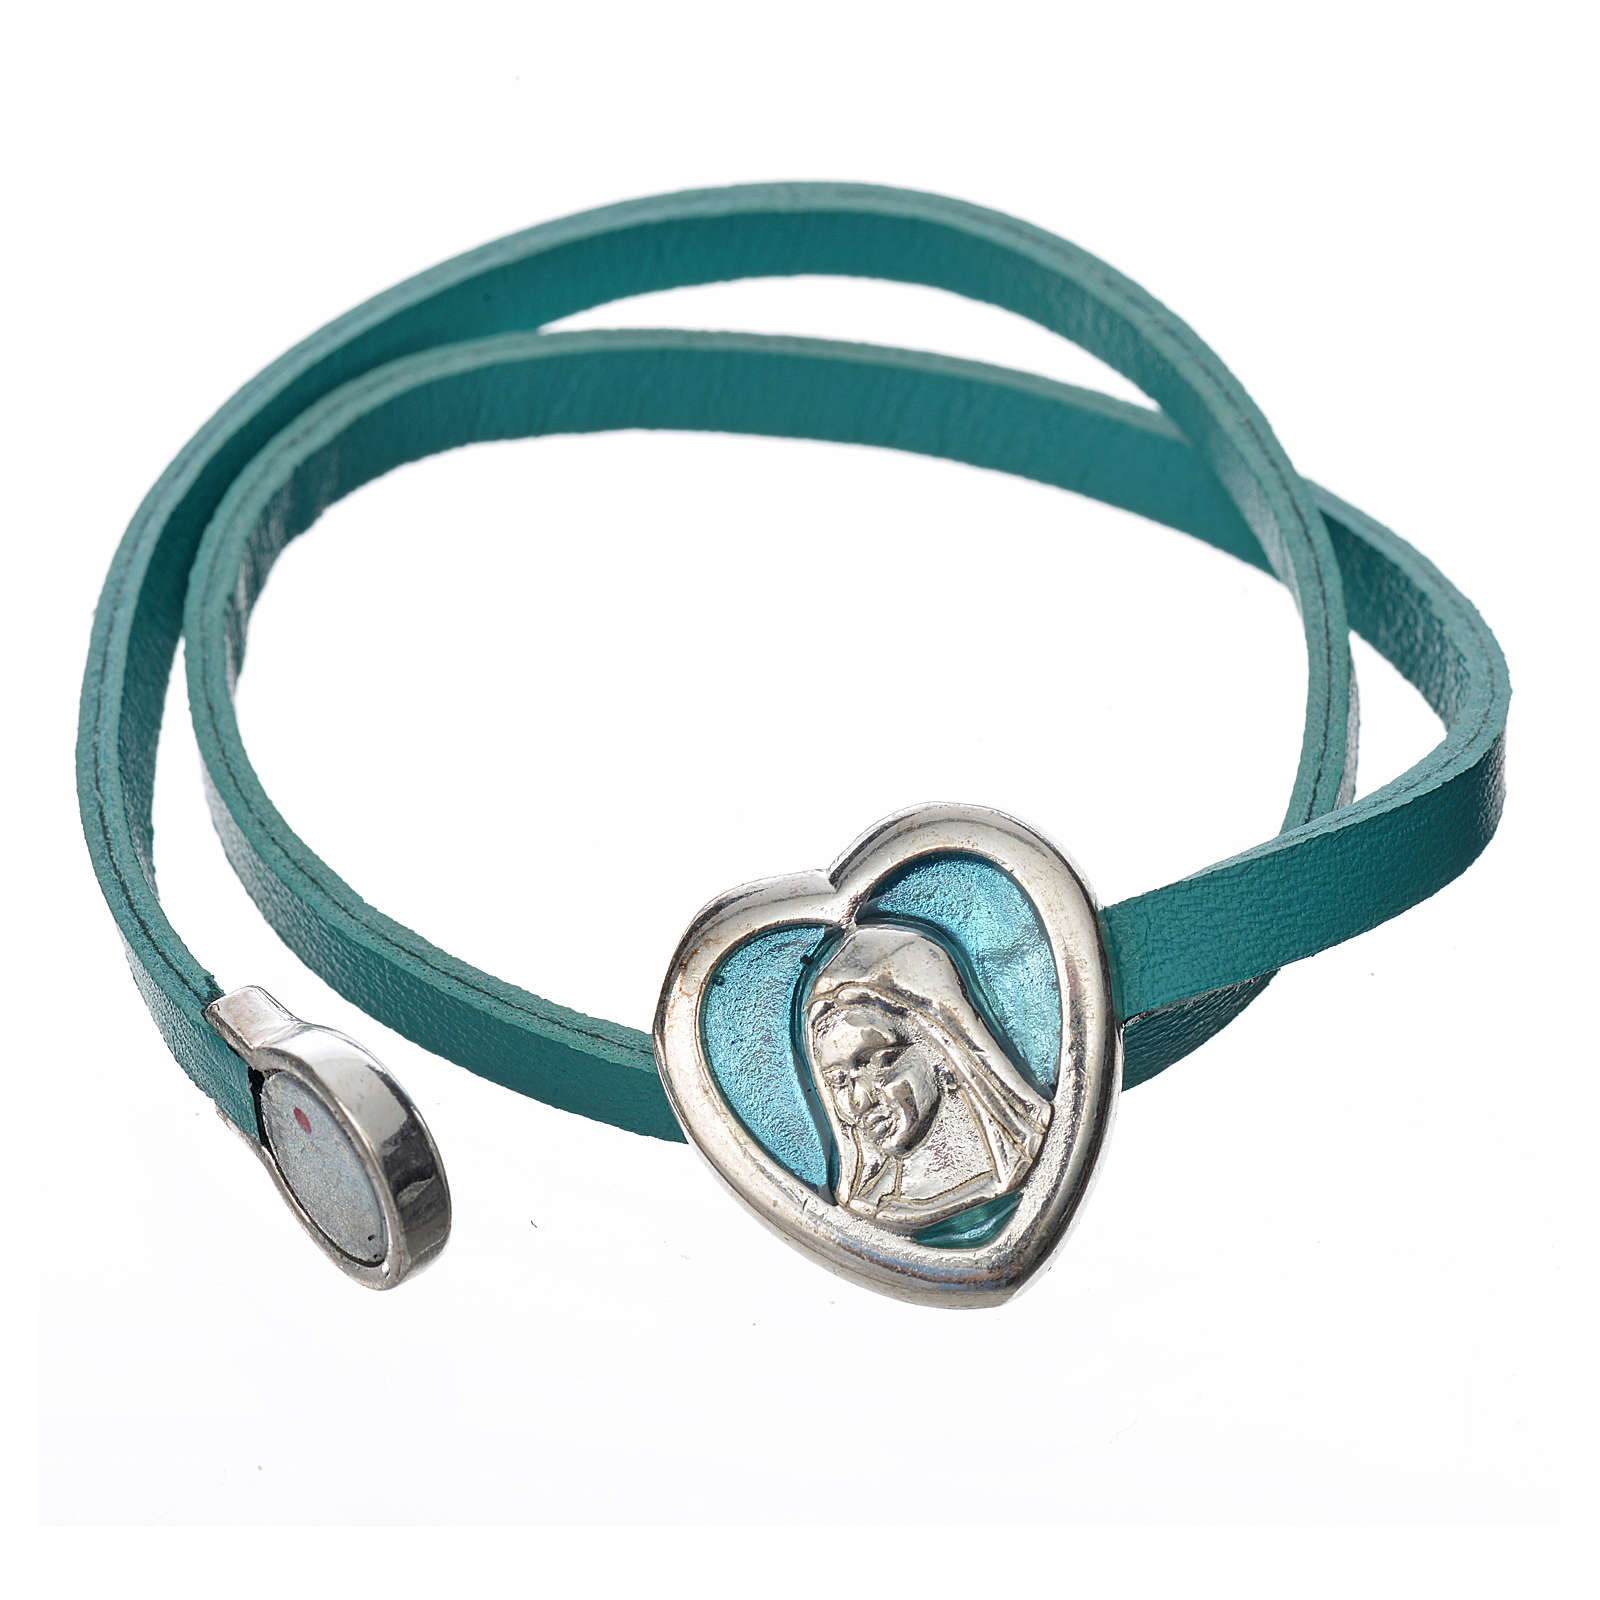 Bracelet in light blue leather with Virgin Mary pendant 4